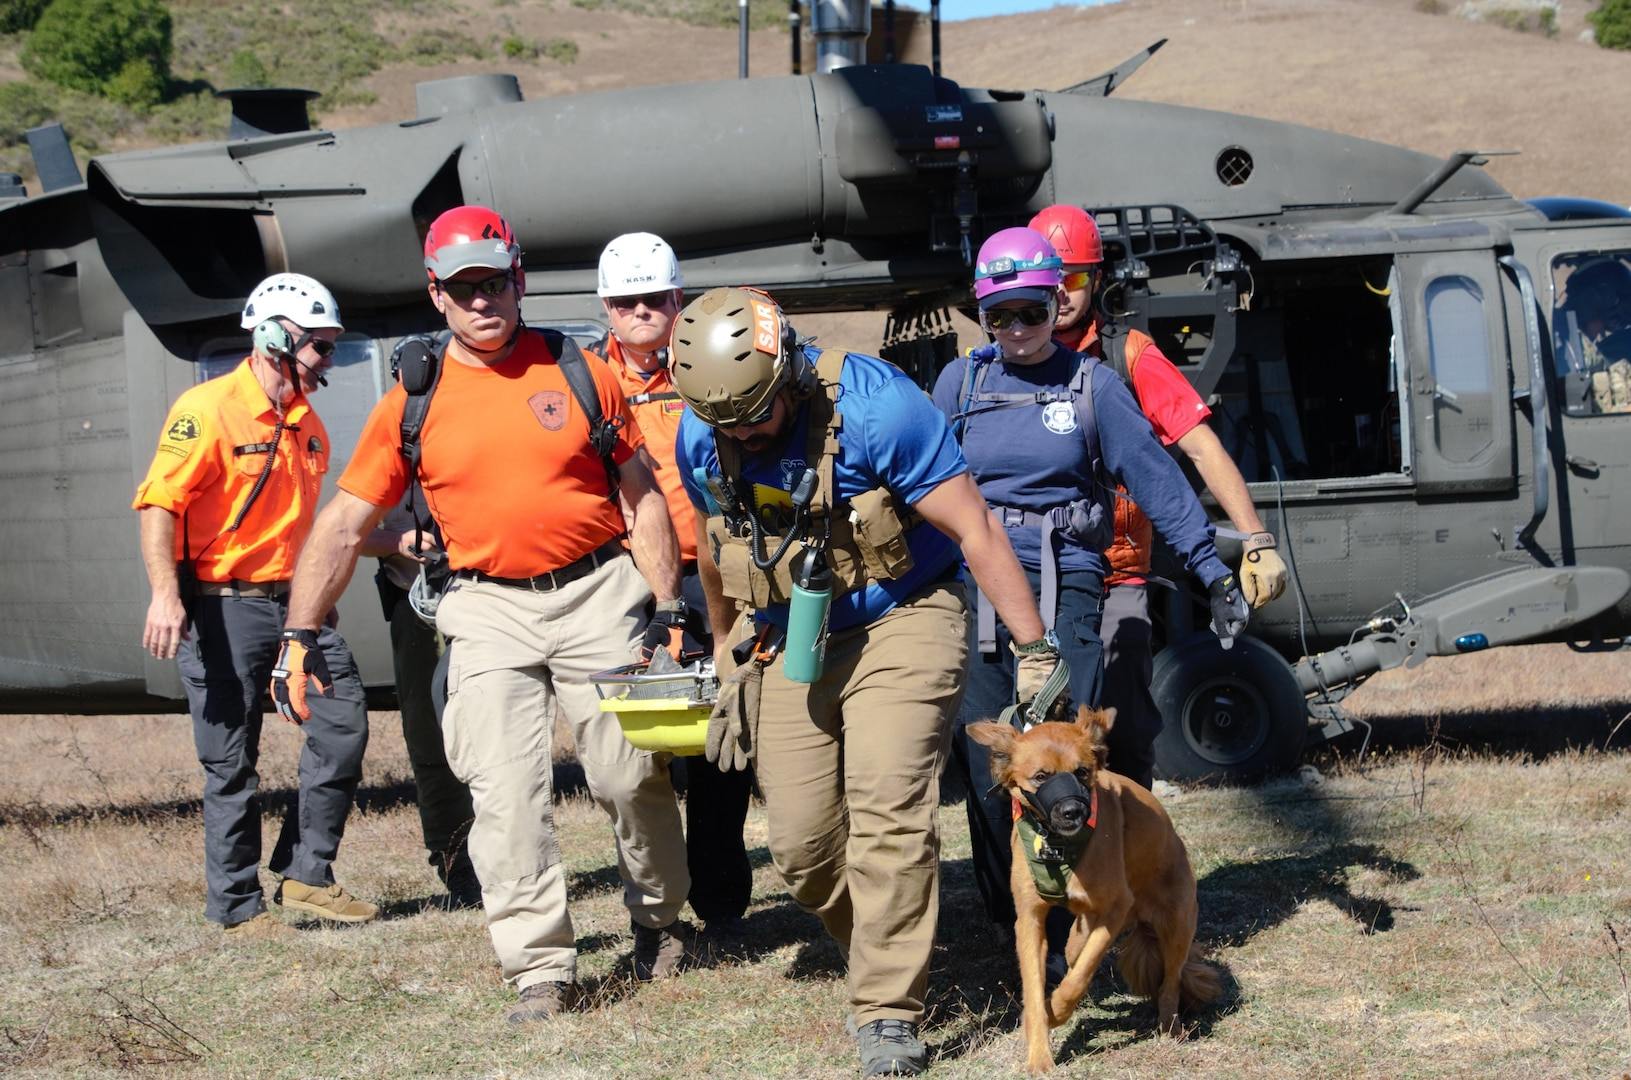 Volunteer search and rescue personnel practice basic helicopter orientation during the safety and awareness course Oct. 4-6 at Walker Creek Ranch, Petaluma, Calif. Some rescuers attended with their rescue dogs from California Rescue Dog Association (CARDA), a free and direct resource of Cal OES' Law and Enforcement Division.